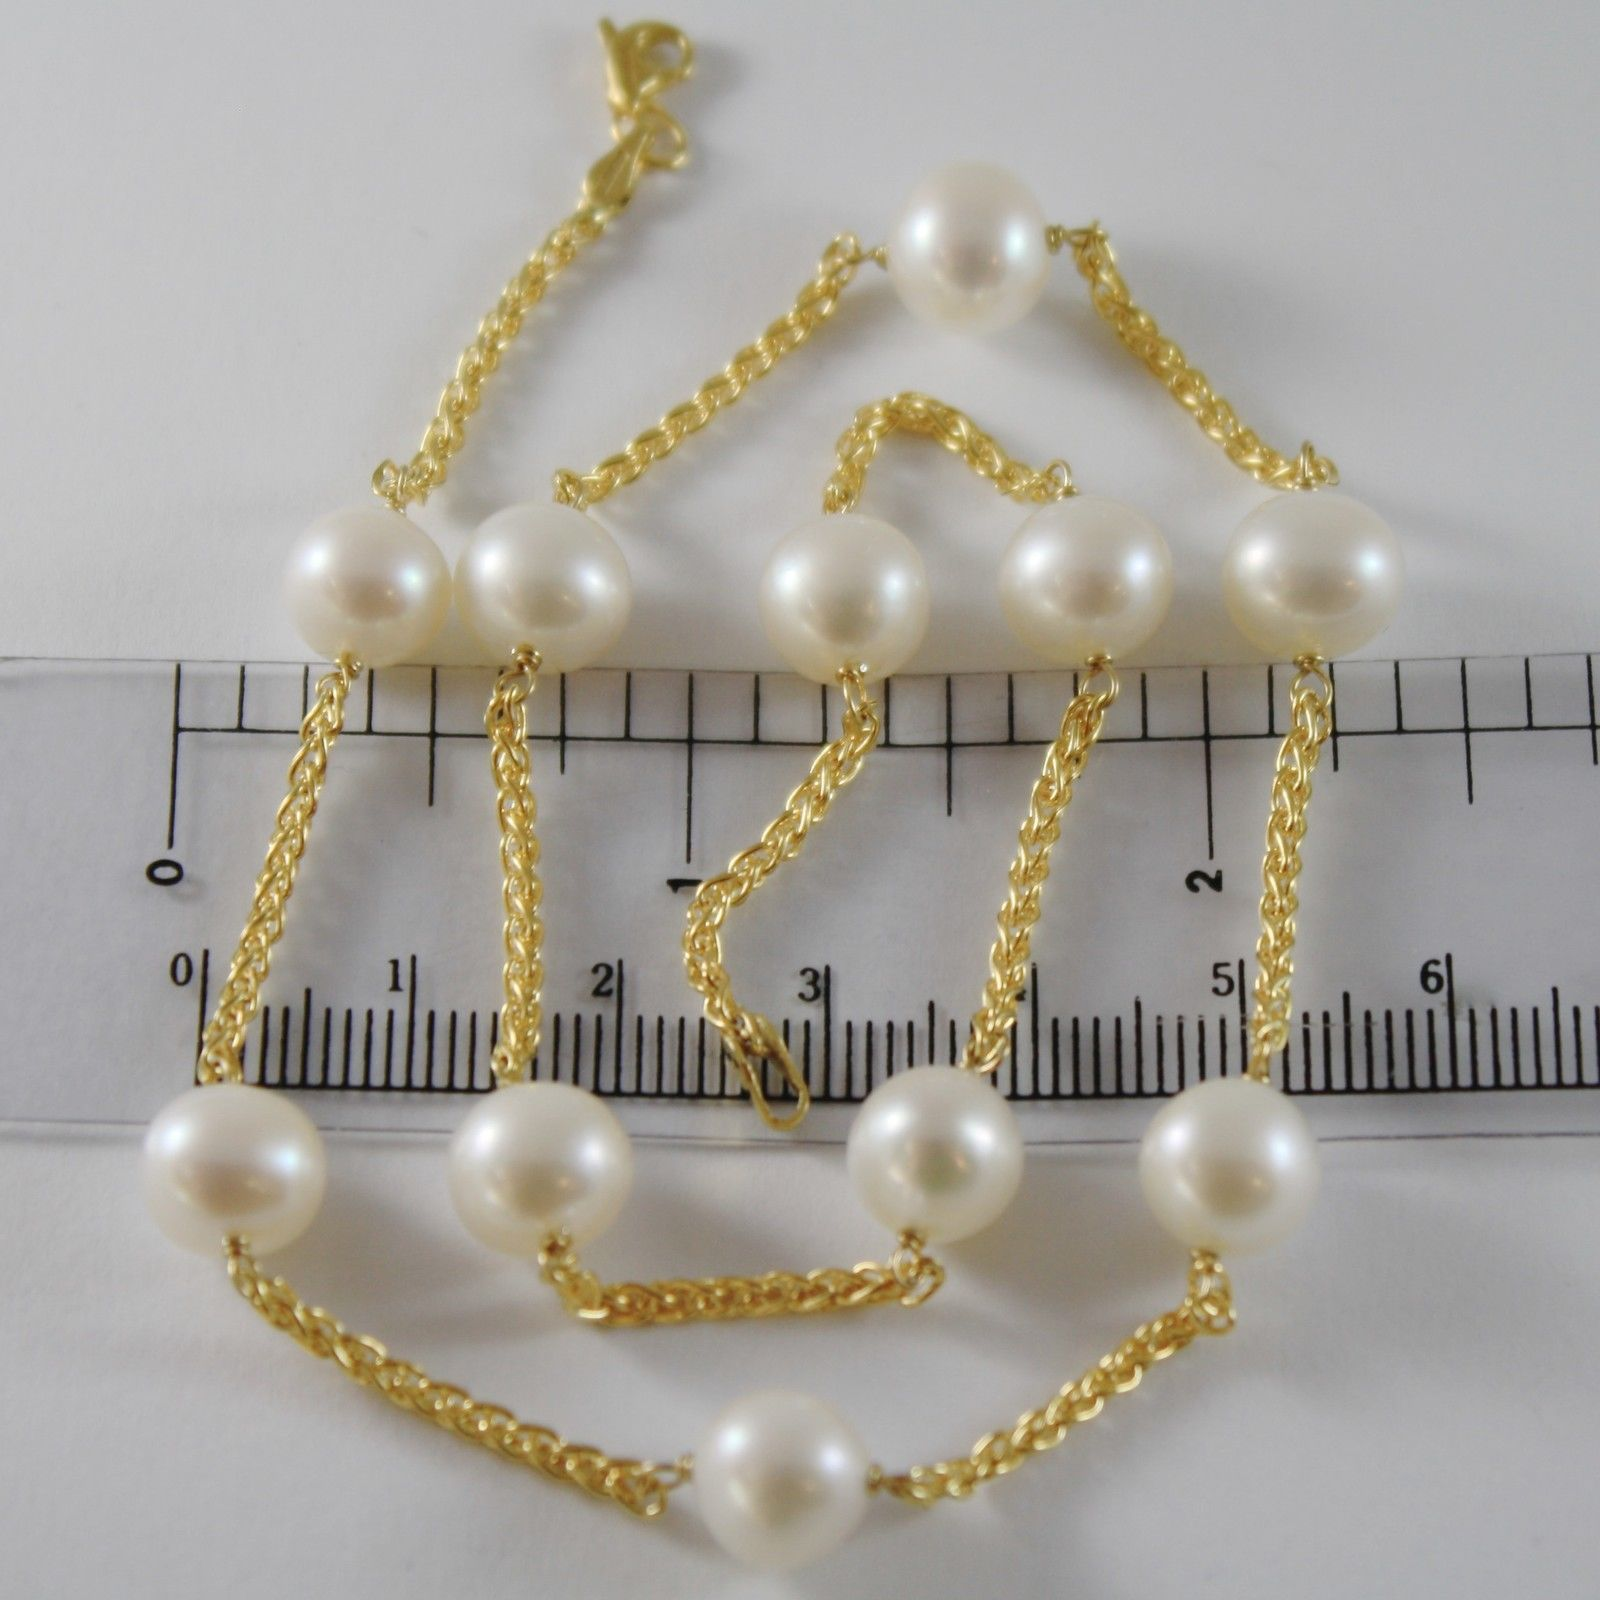 9K YELLOW GOLD NECKLACE WITH WHITE PEARLS 9 MM, 42 CM, 16.5 INCHES MADE IN ITALY